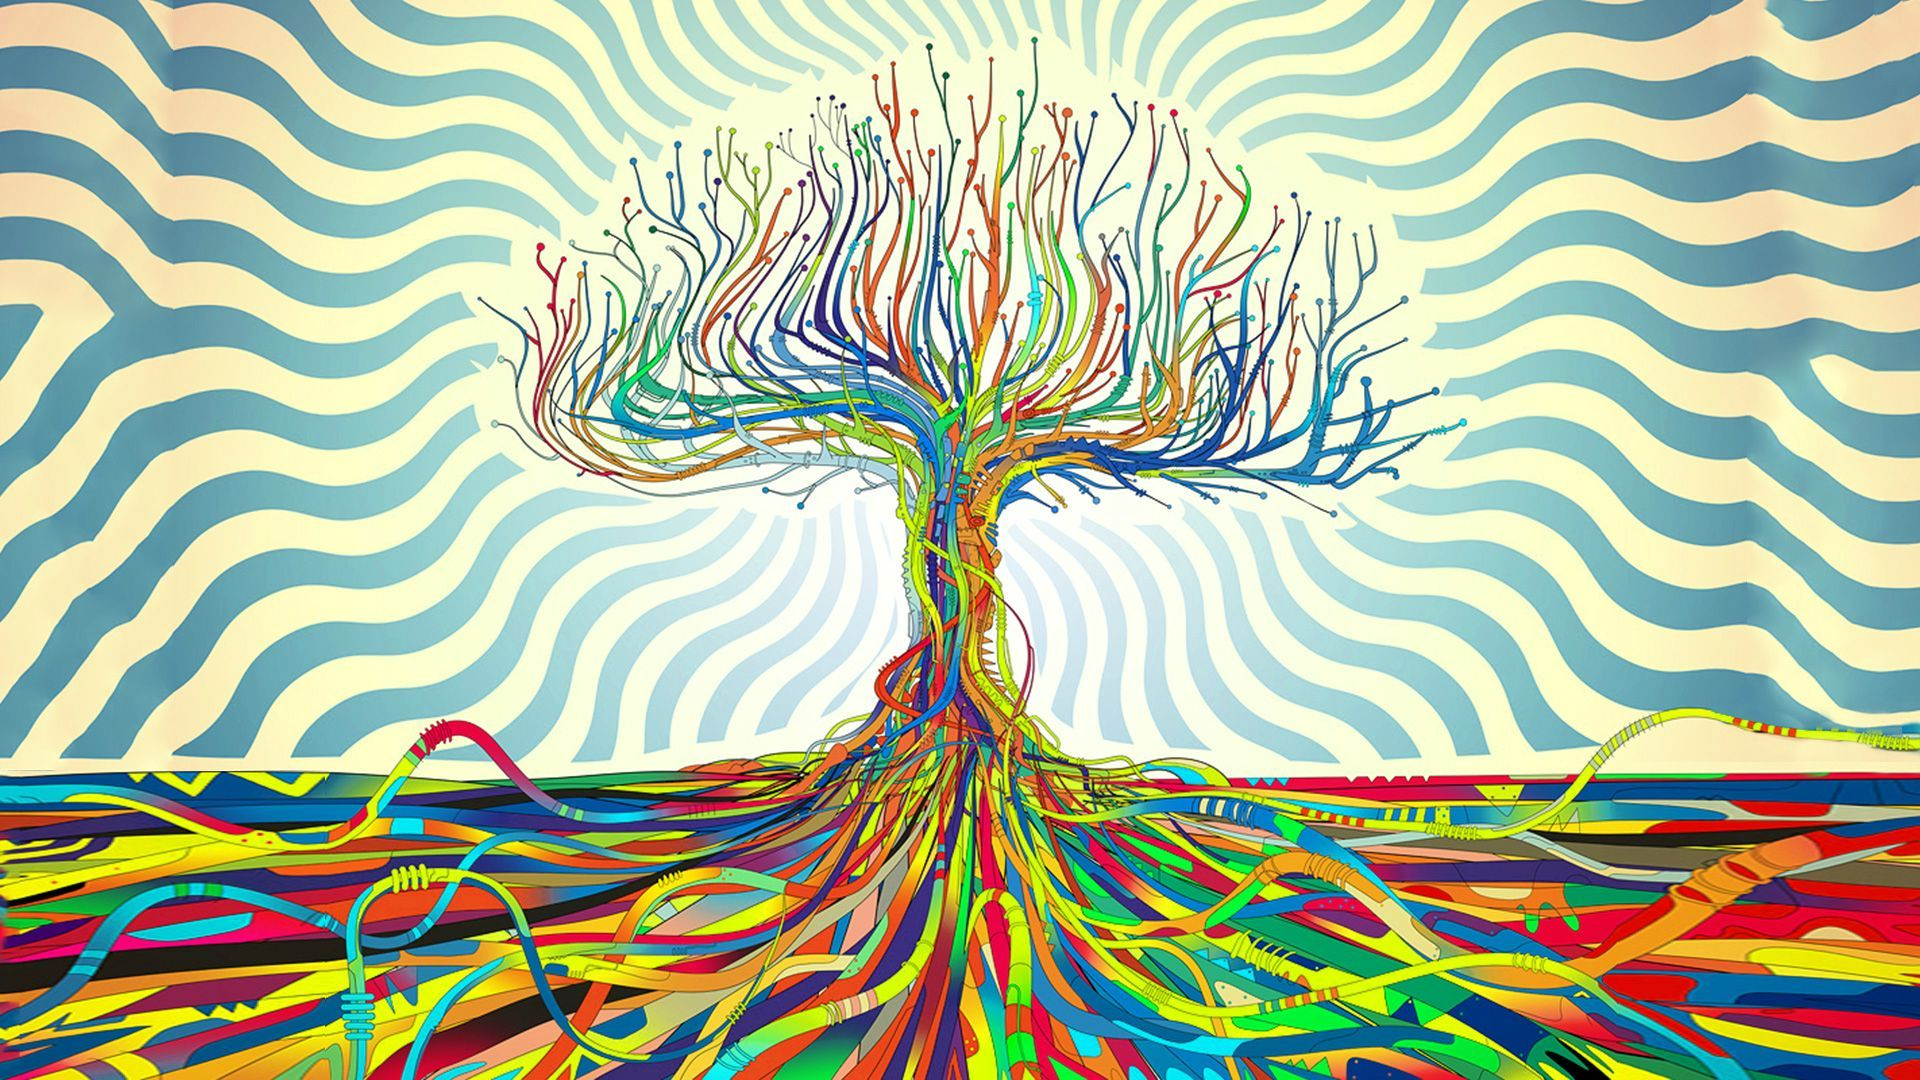 Abstract Rrainbow Tree Backgrounds Hd Wallpapers Background Hd Wallpaper Trippy Wallpaper Wallpaper